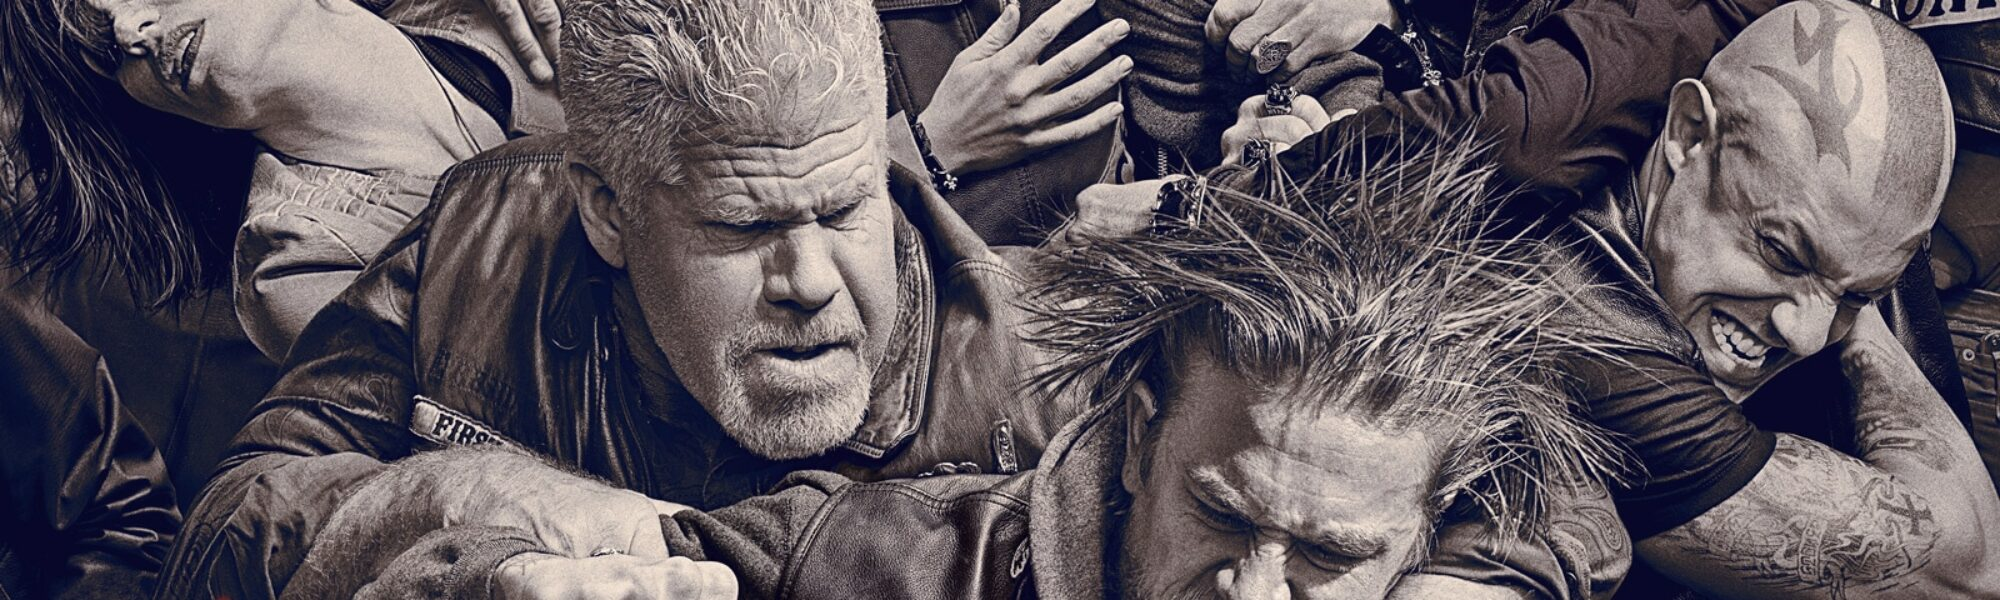 Les Sons of Anarchy - FX